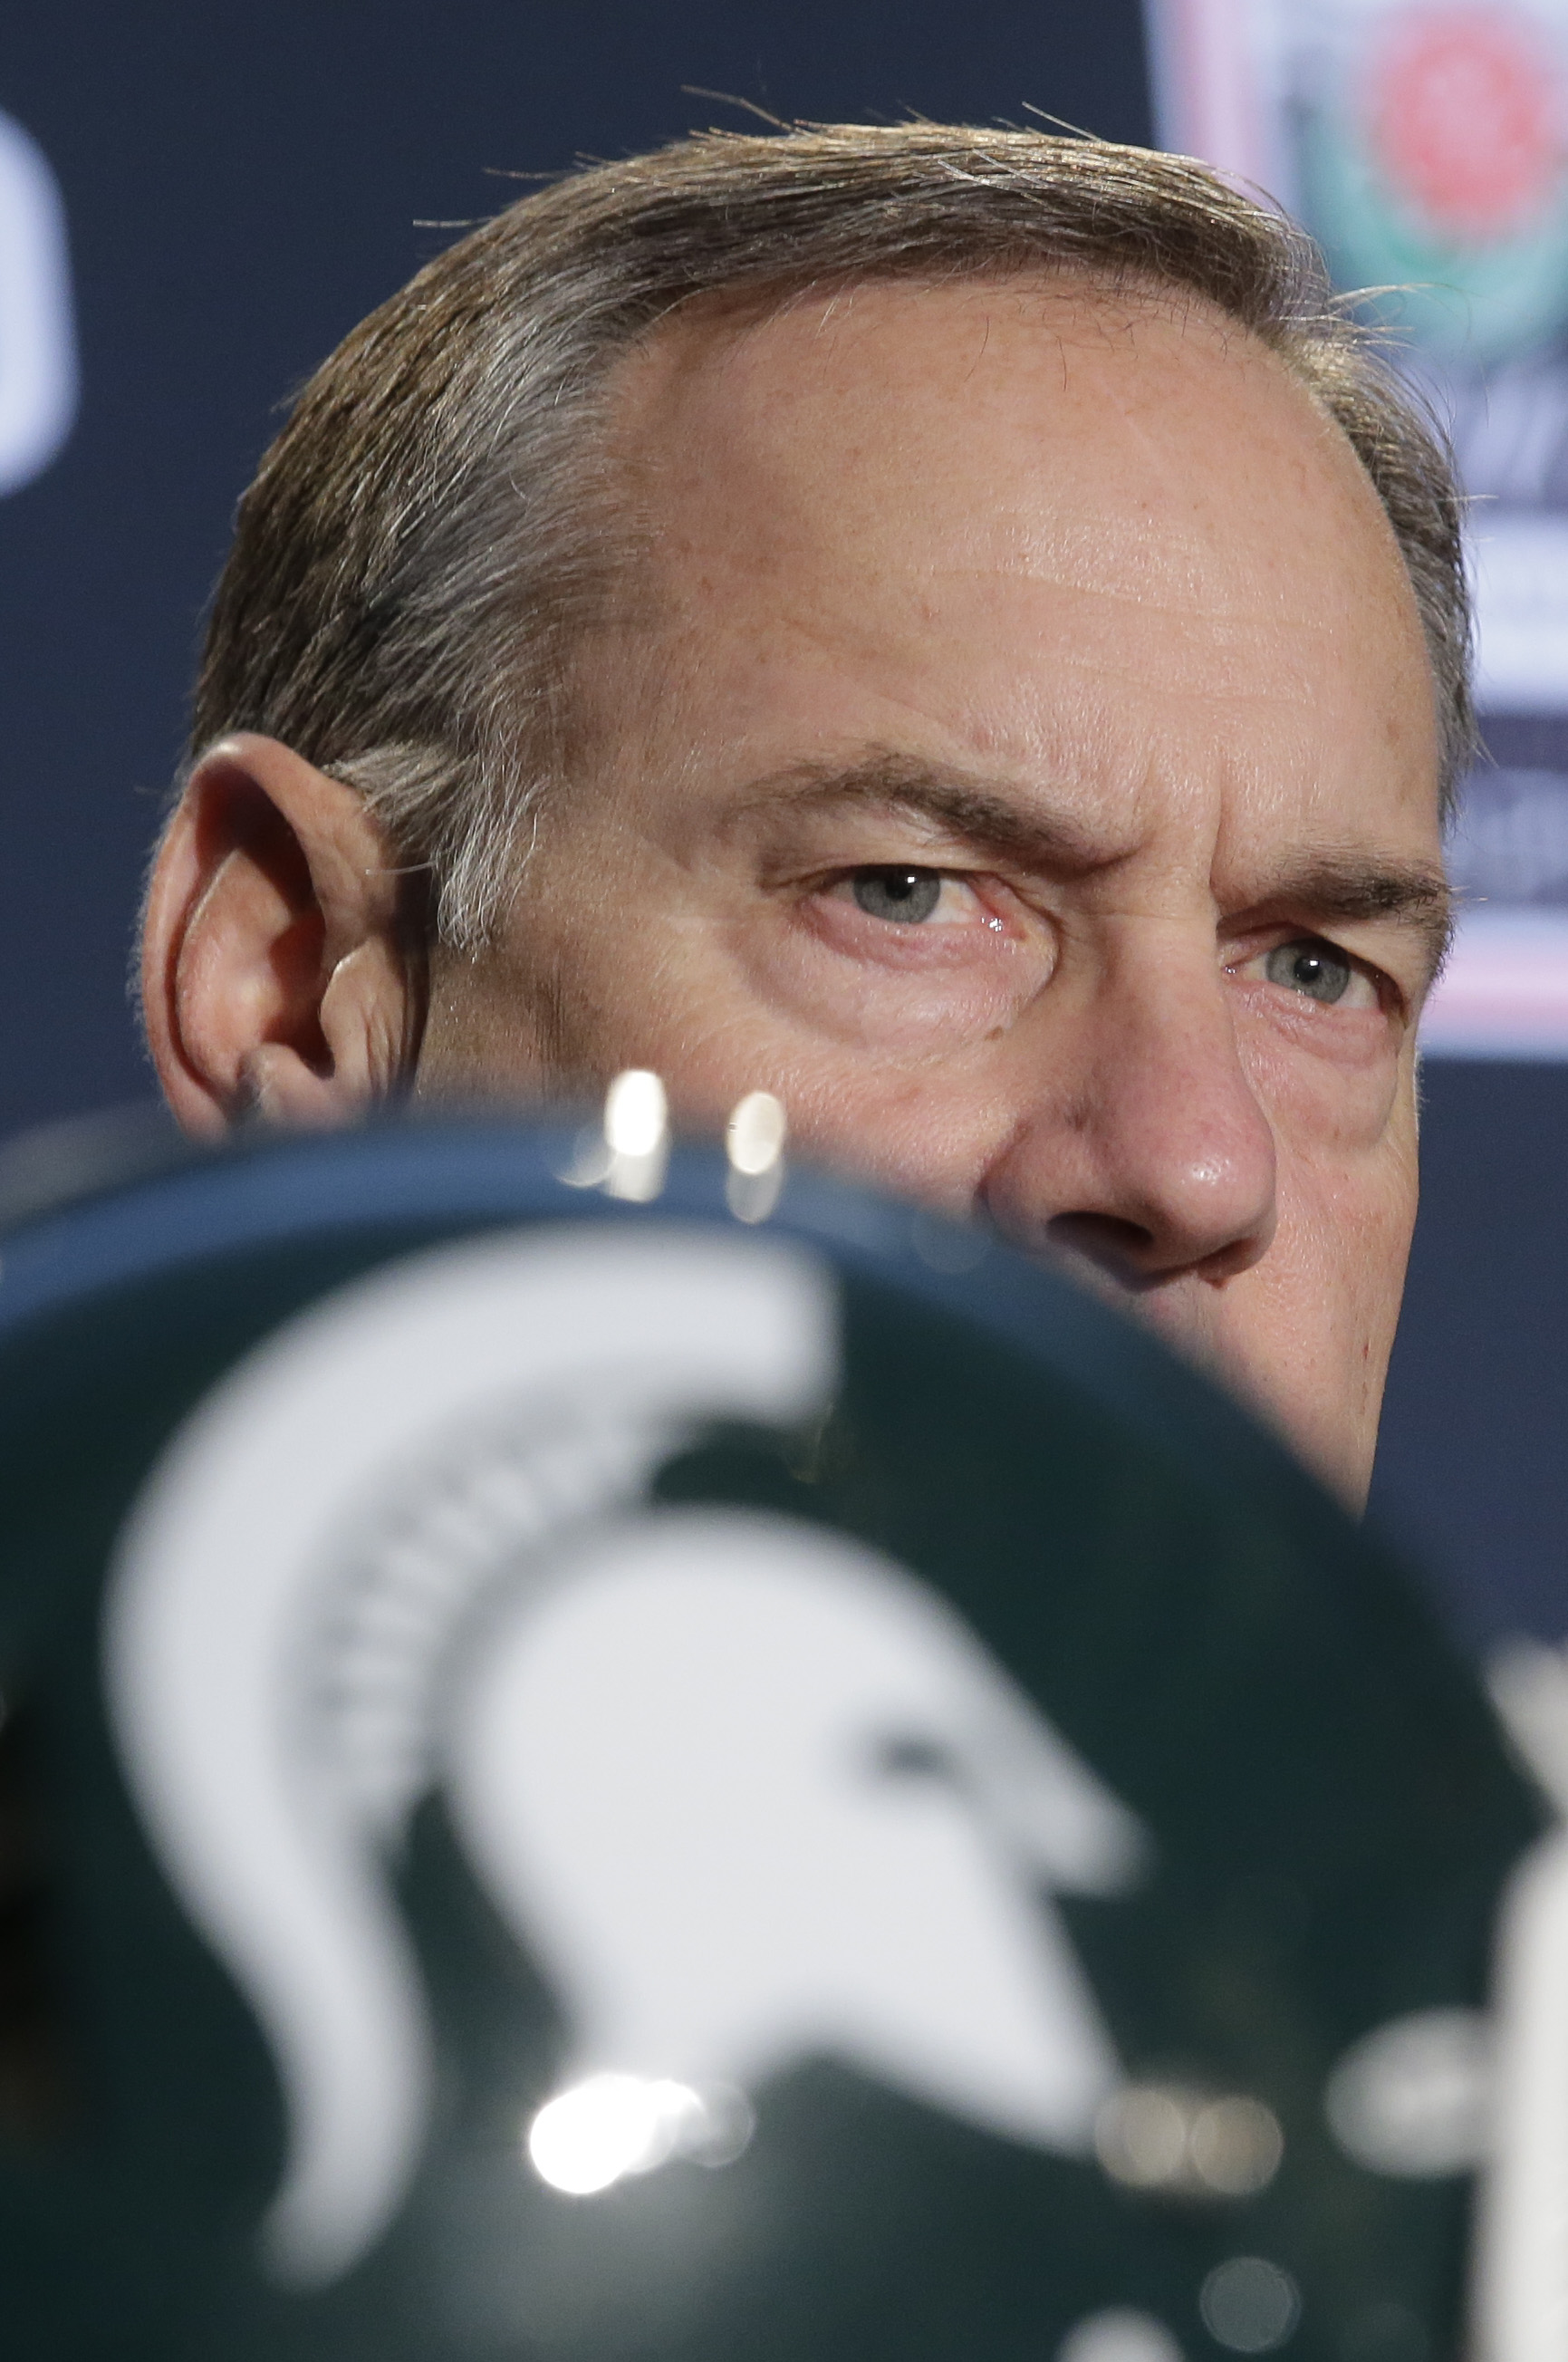 FILE- In this Dec. 30, 2014 file photo, Michigan State head coach Mark Dantonio takes questions during a news conference in Los Angeles before facing Stanford in the 100th Rose Bowl NCAA college football game. The pundits are talking up the Big Ten league